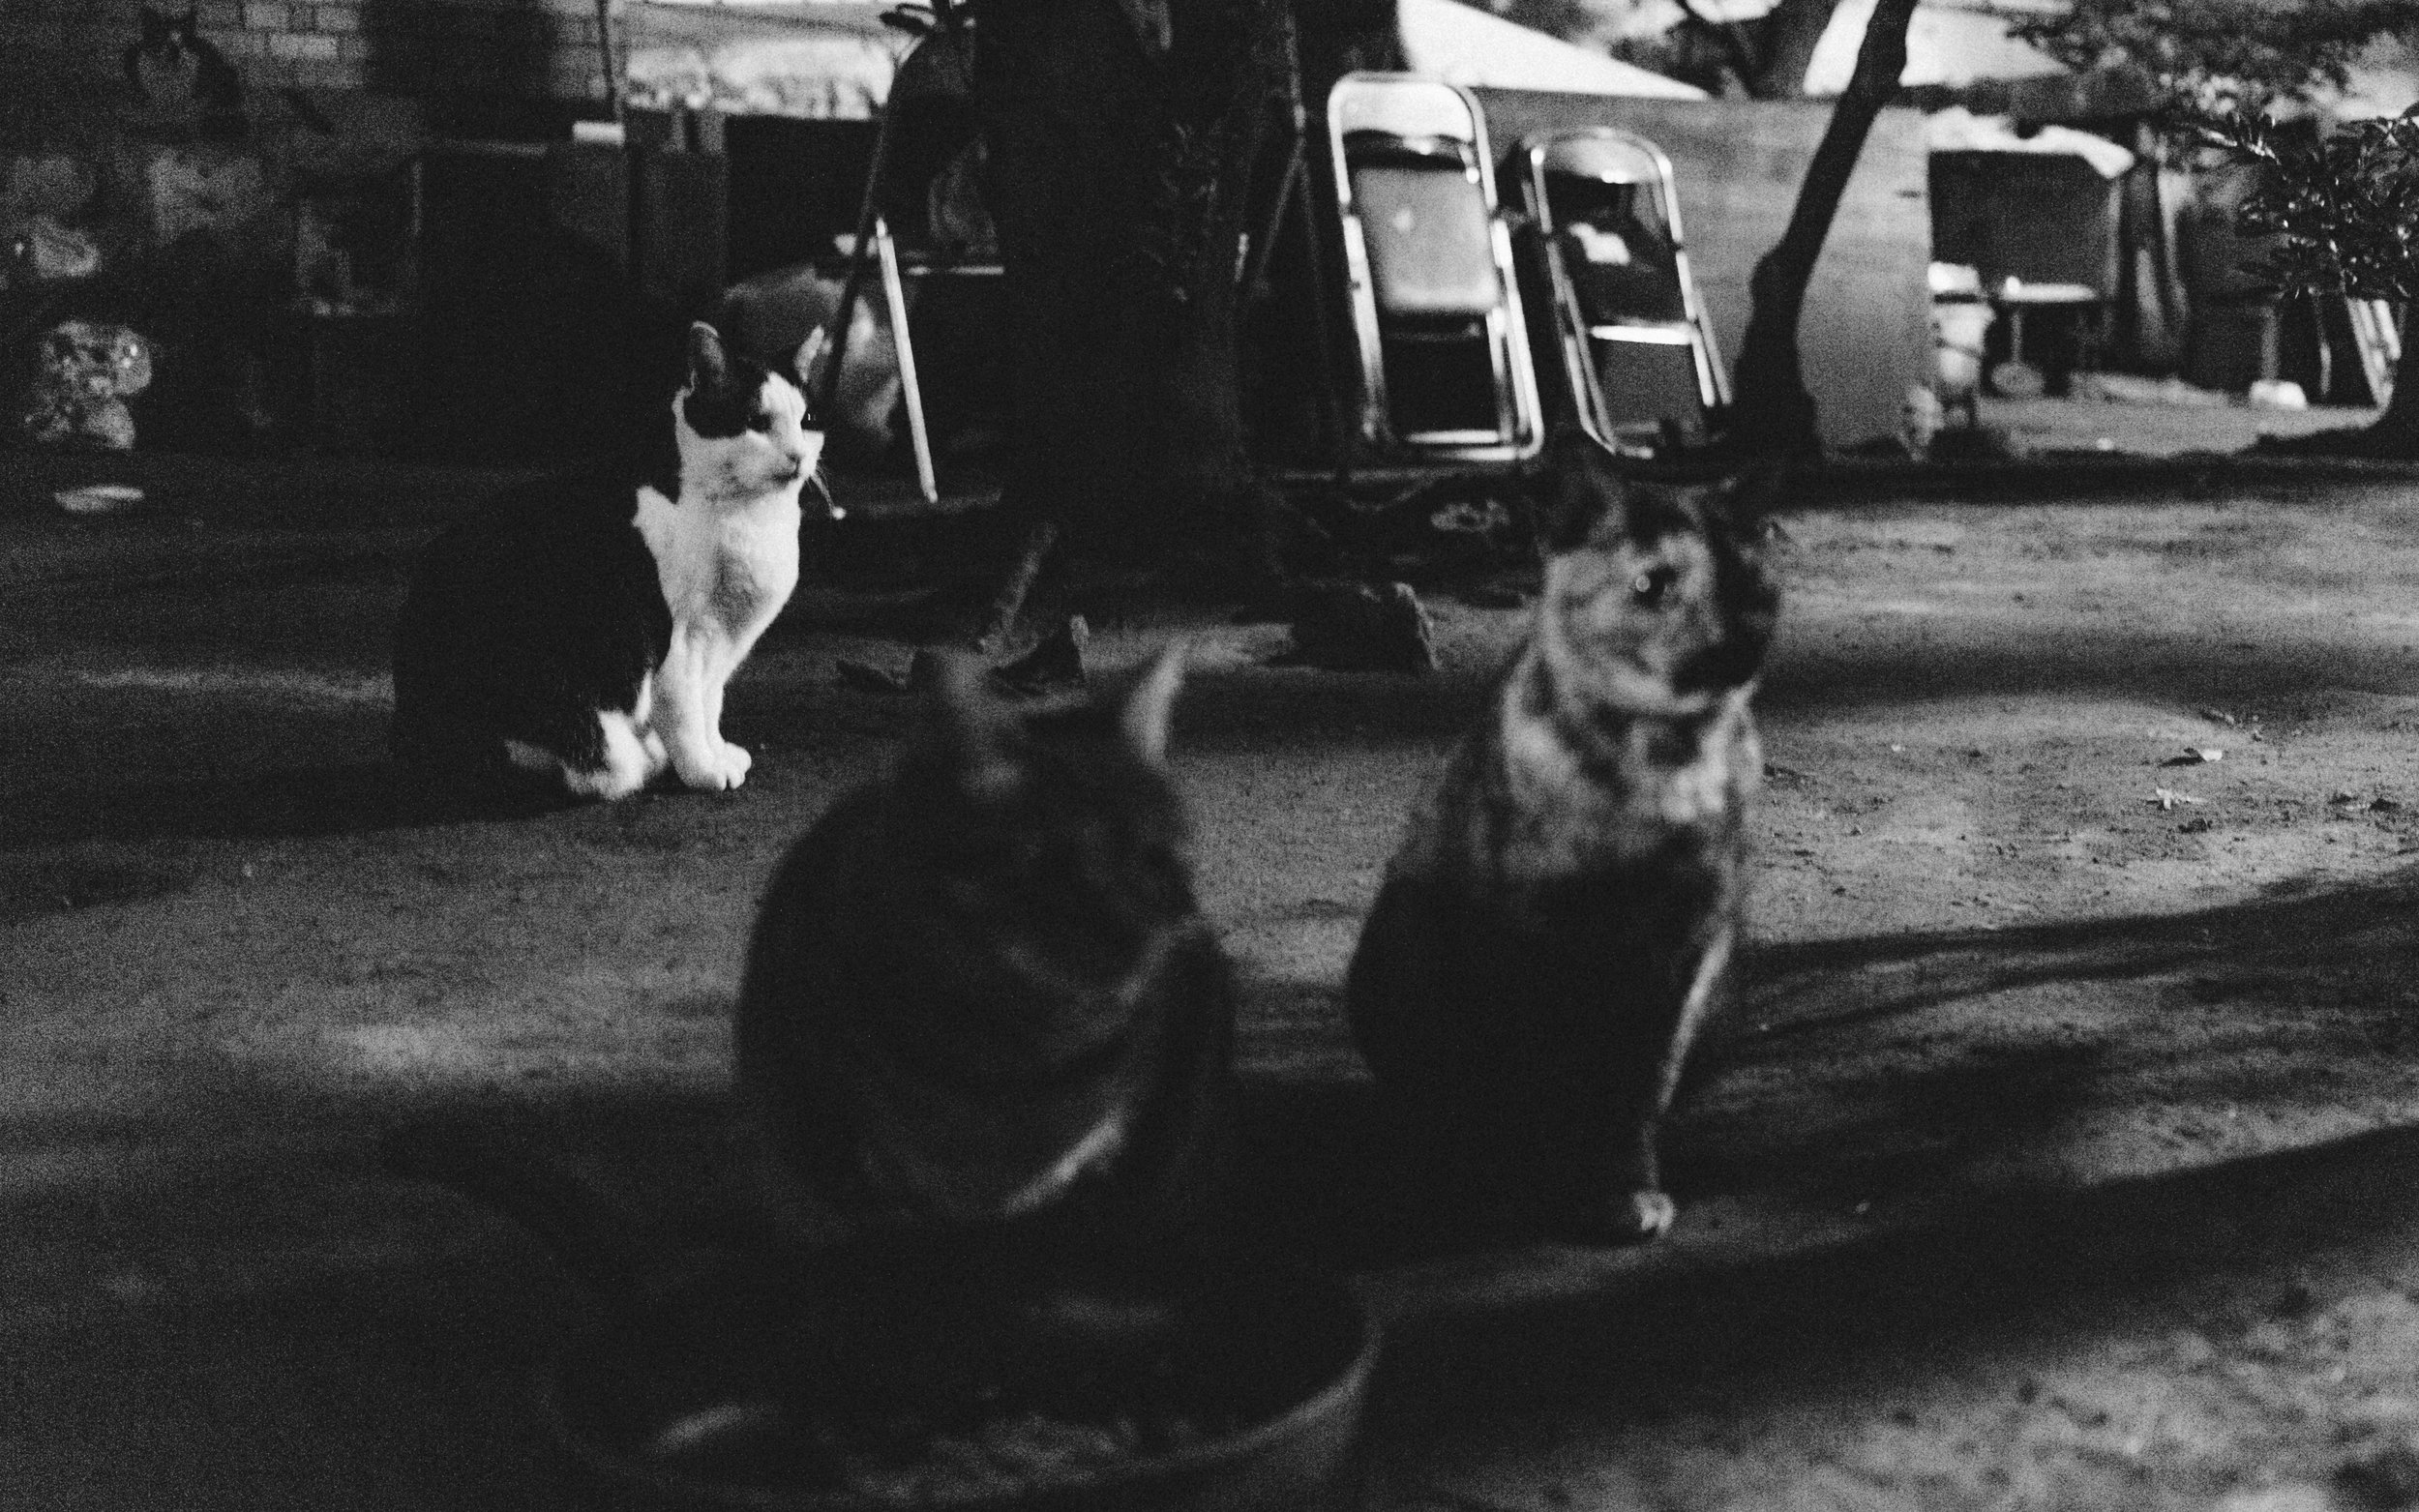 The tension in the cats as we approached closer.